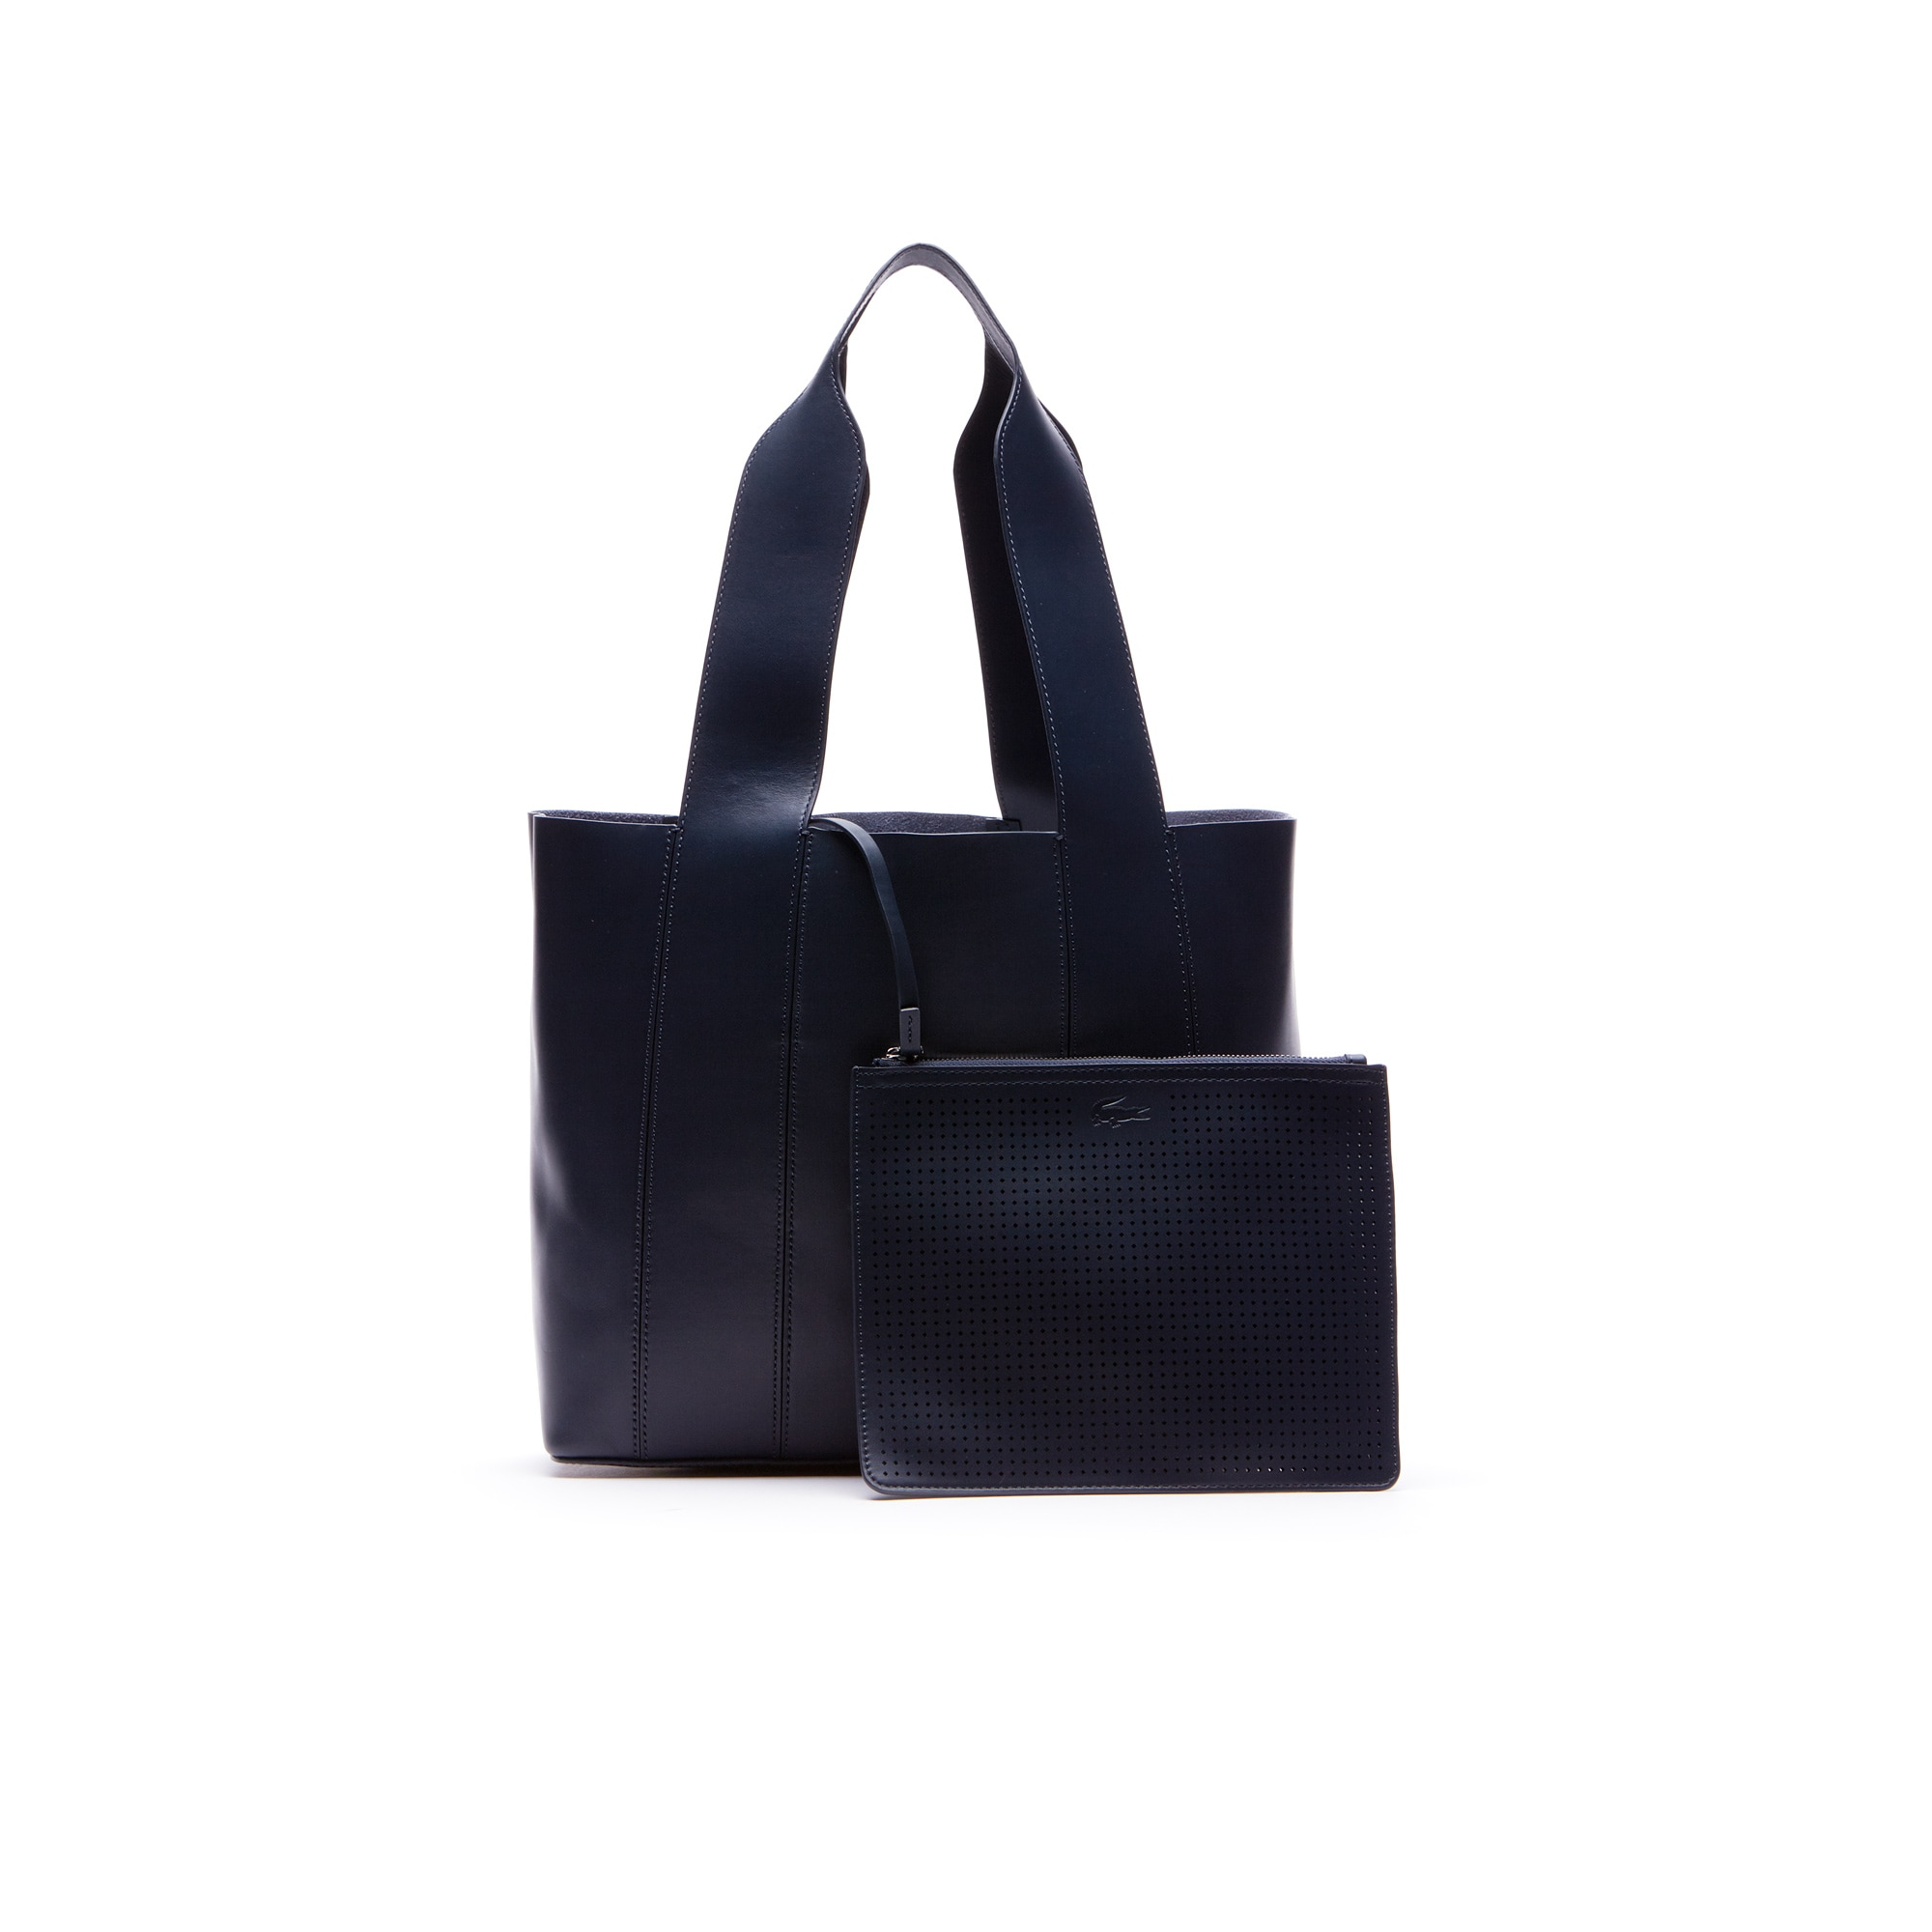 Einfarbige Damen-Leder Tote Bag Purity Soft